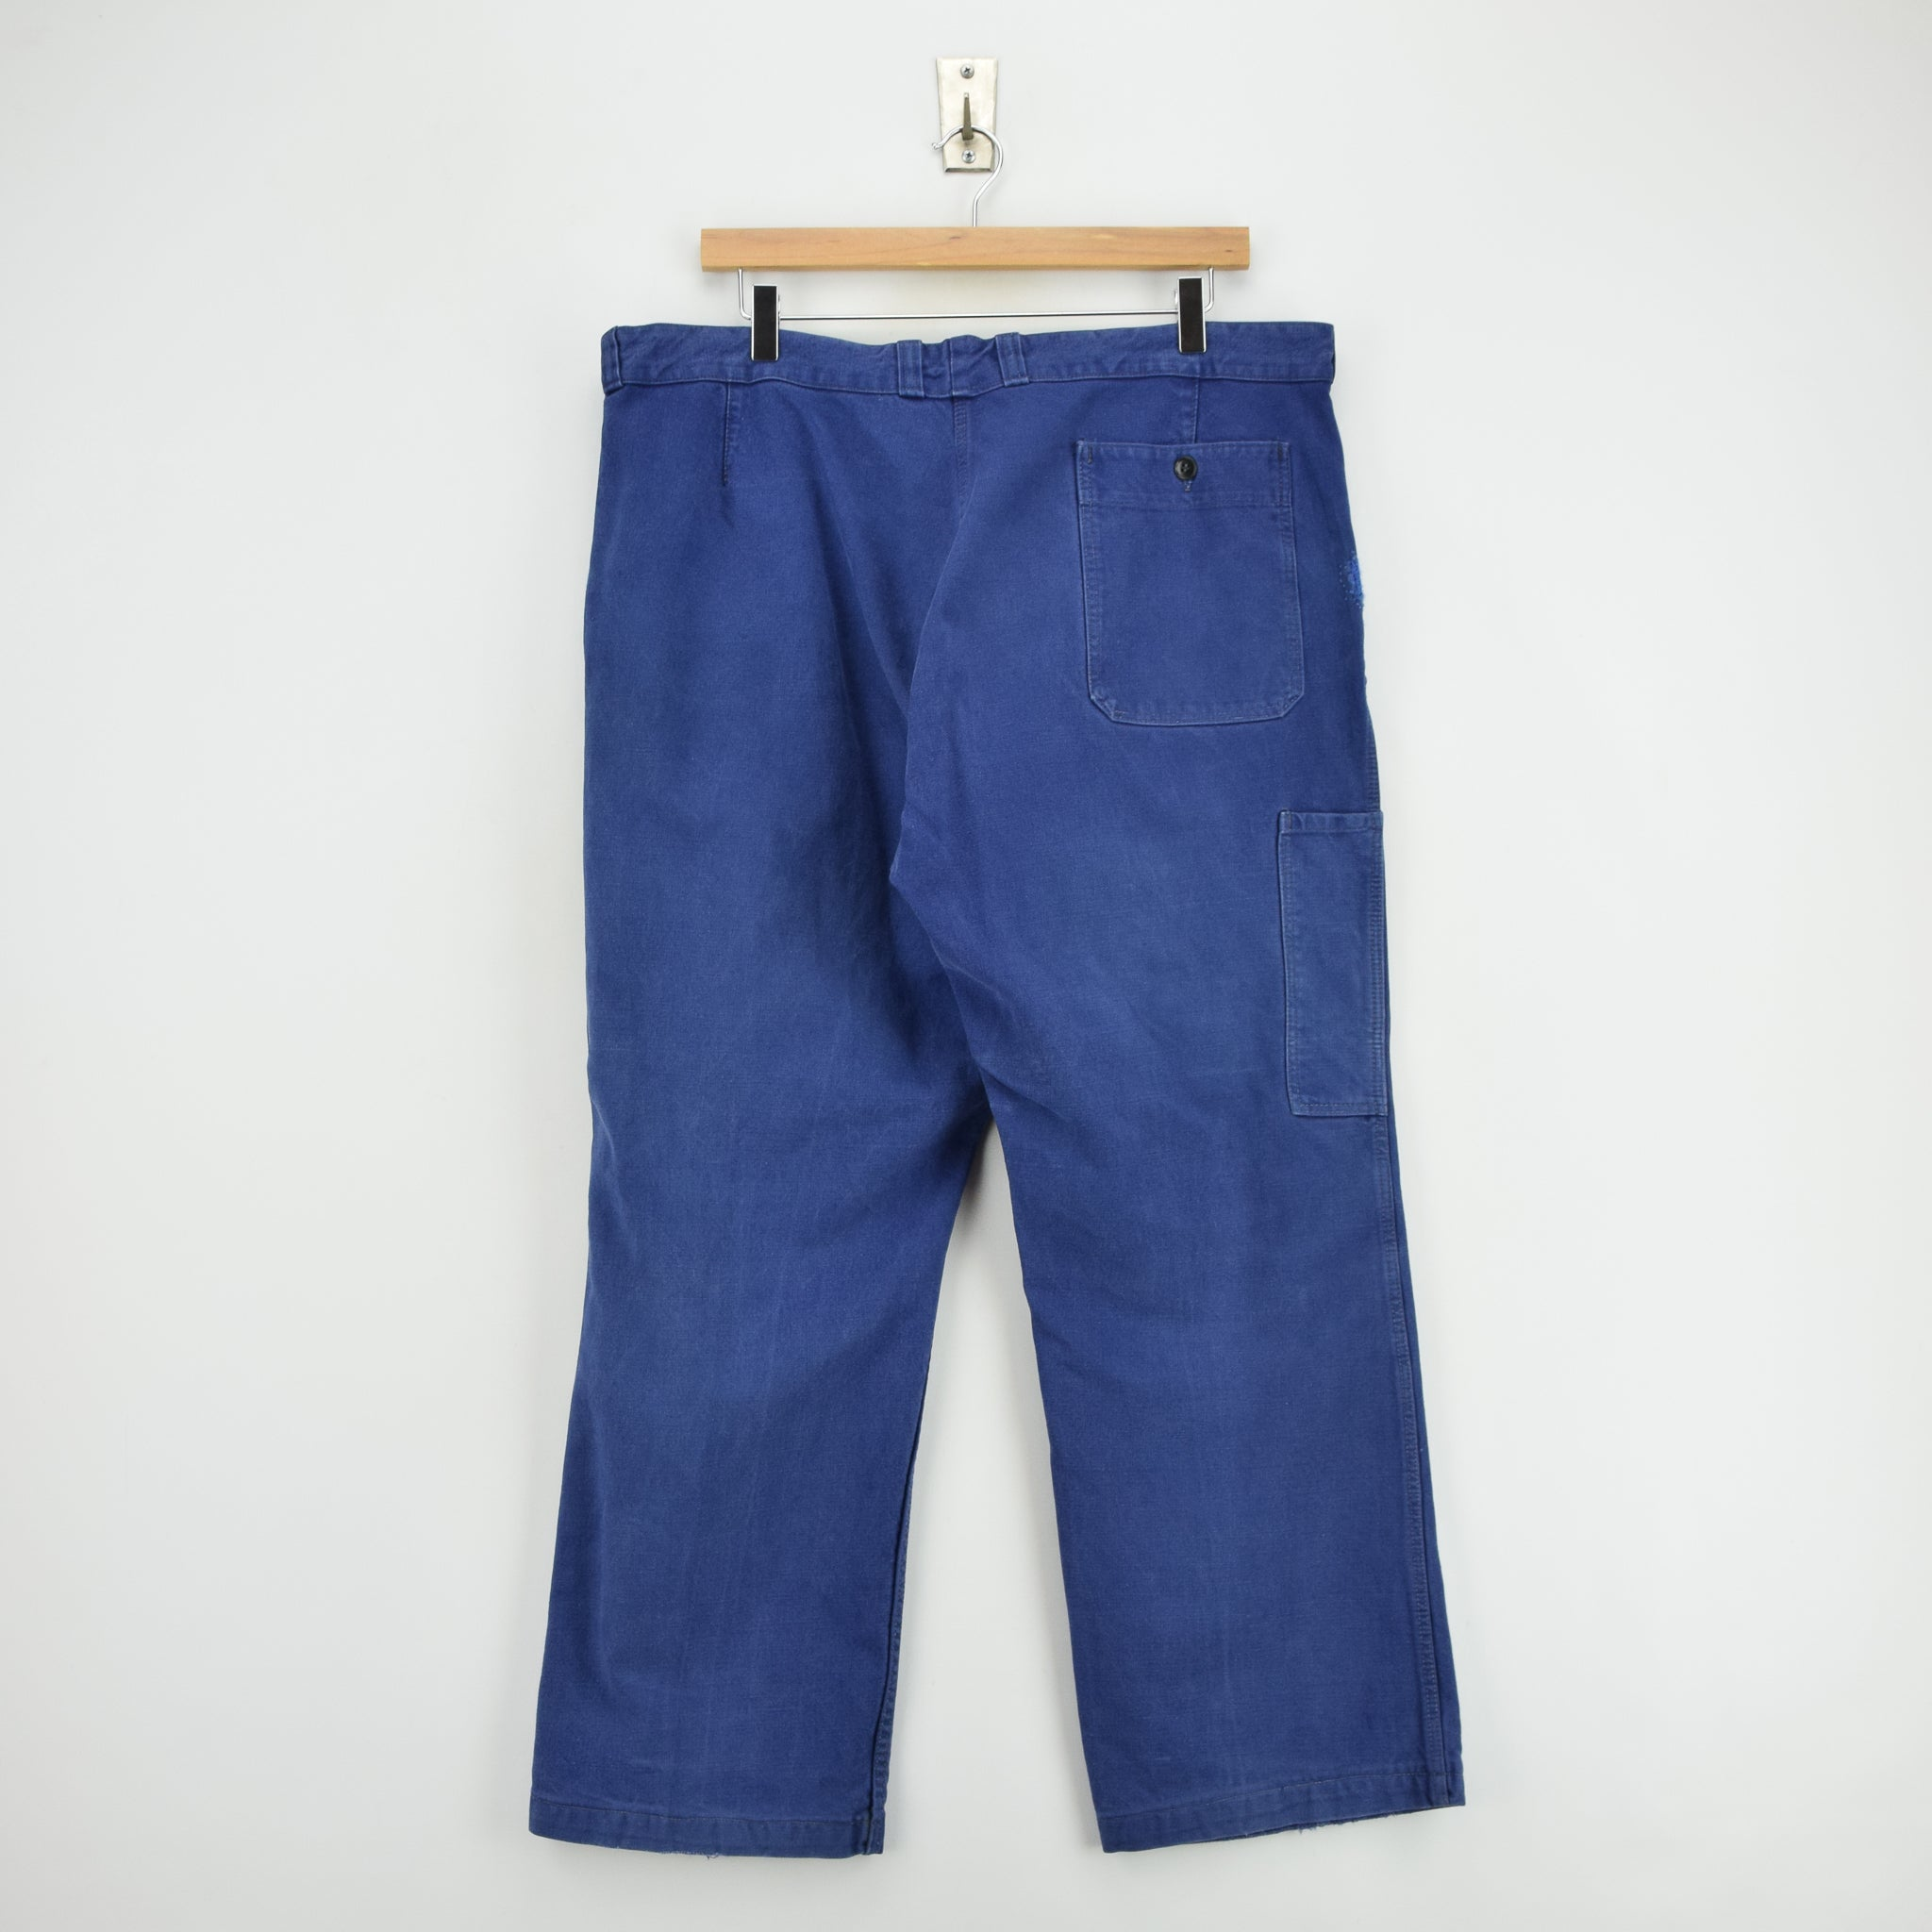 Vintage Workwear Blue Vetra French Work Utility Trousers France Made 36 W 28 L back